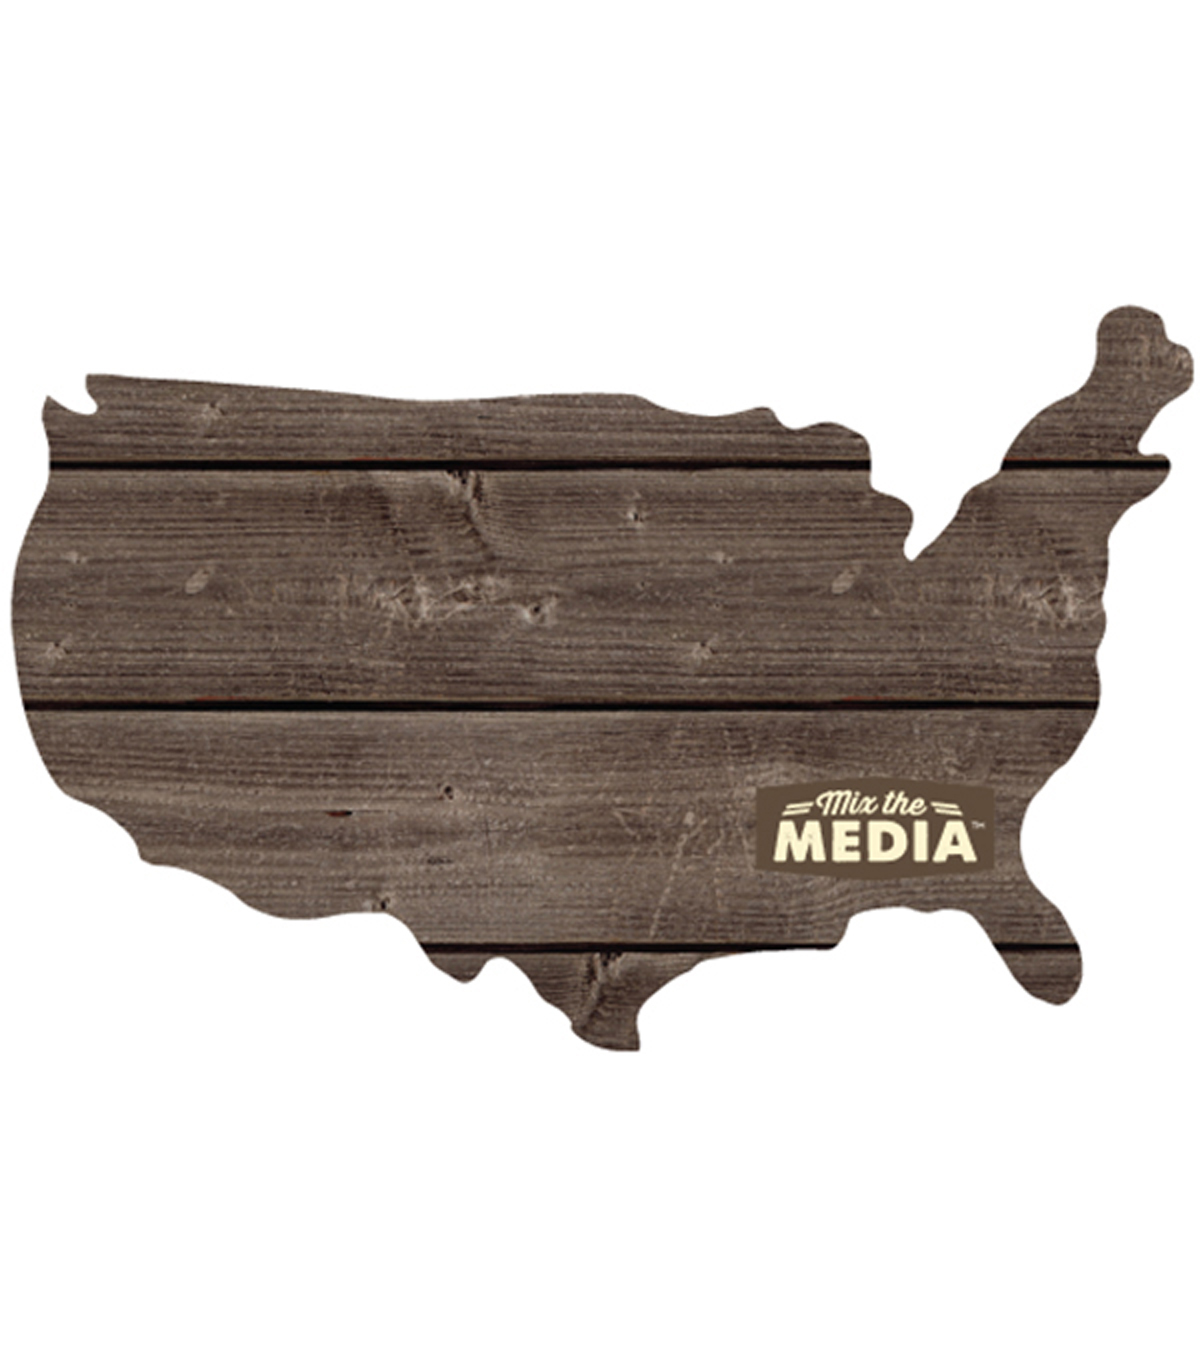 Jillibean Soup Mix The Media Shaped Wooden Plank-13.5\u0022X11.25\u0022